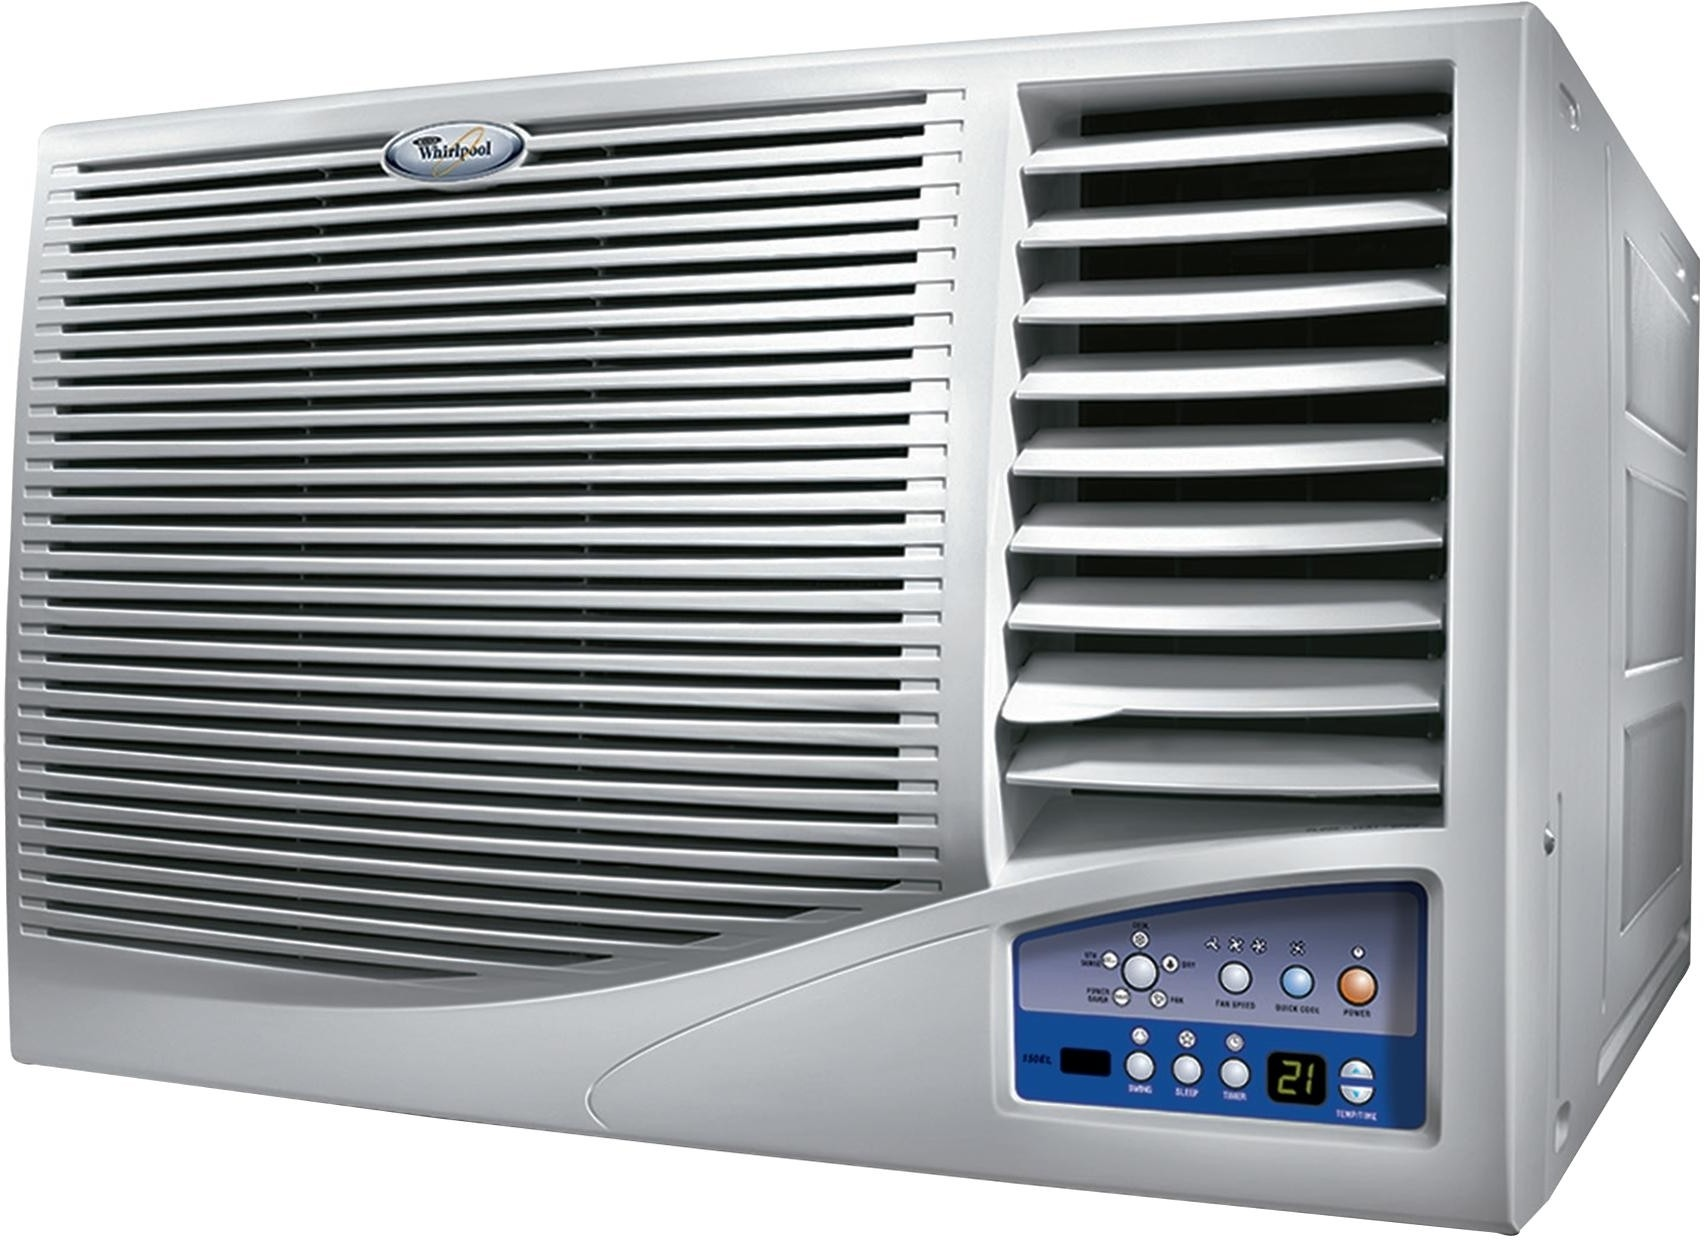 Whirlpool 1 2 ton 5 star window ac white price in india for 1 5 ton window ac price india